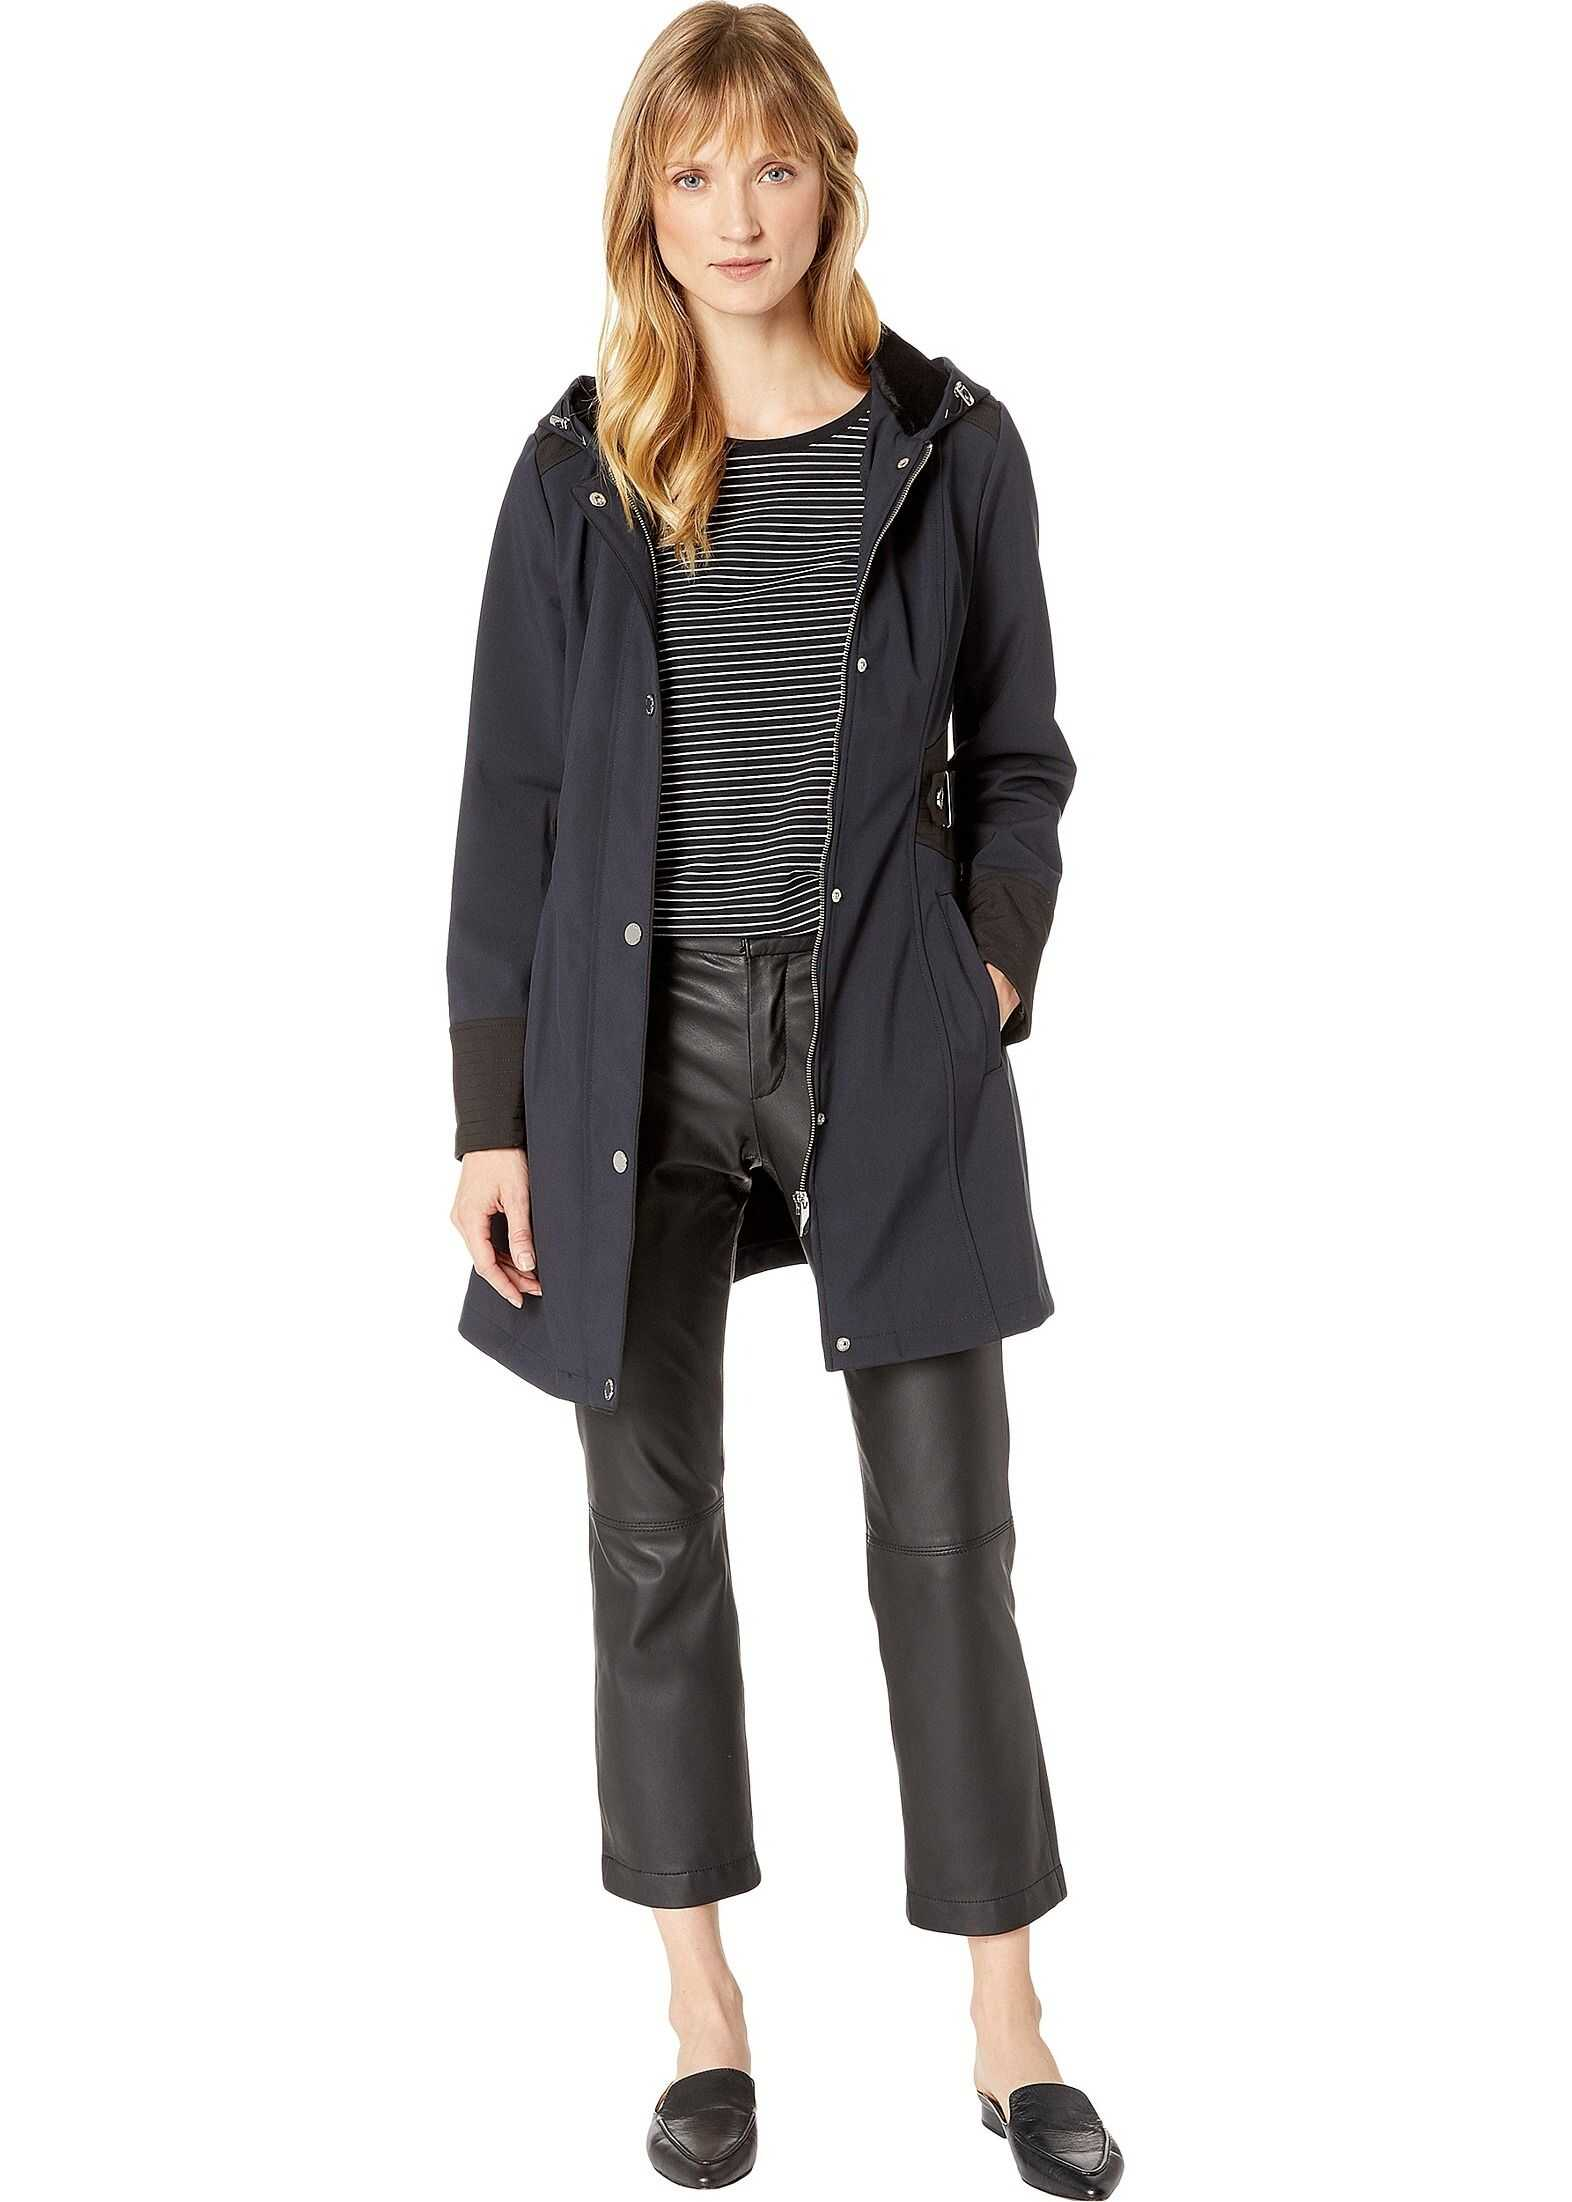 Two-Tone Ruched Sided Water Resistant Softshell with Faux Fur Cozy Backing & Hardware